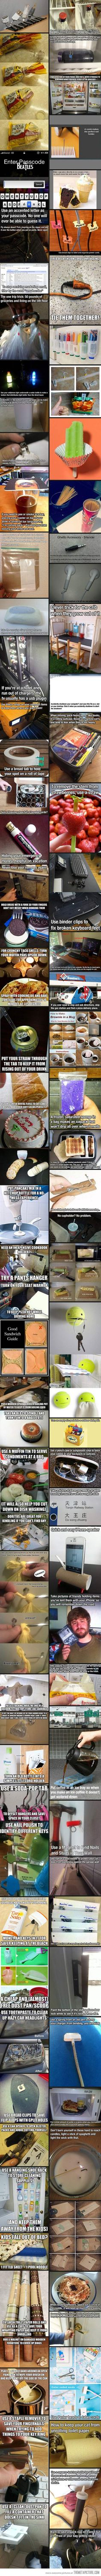 Most Useful Life Hacks